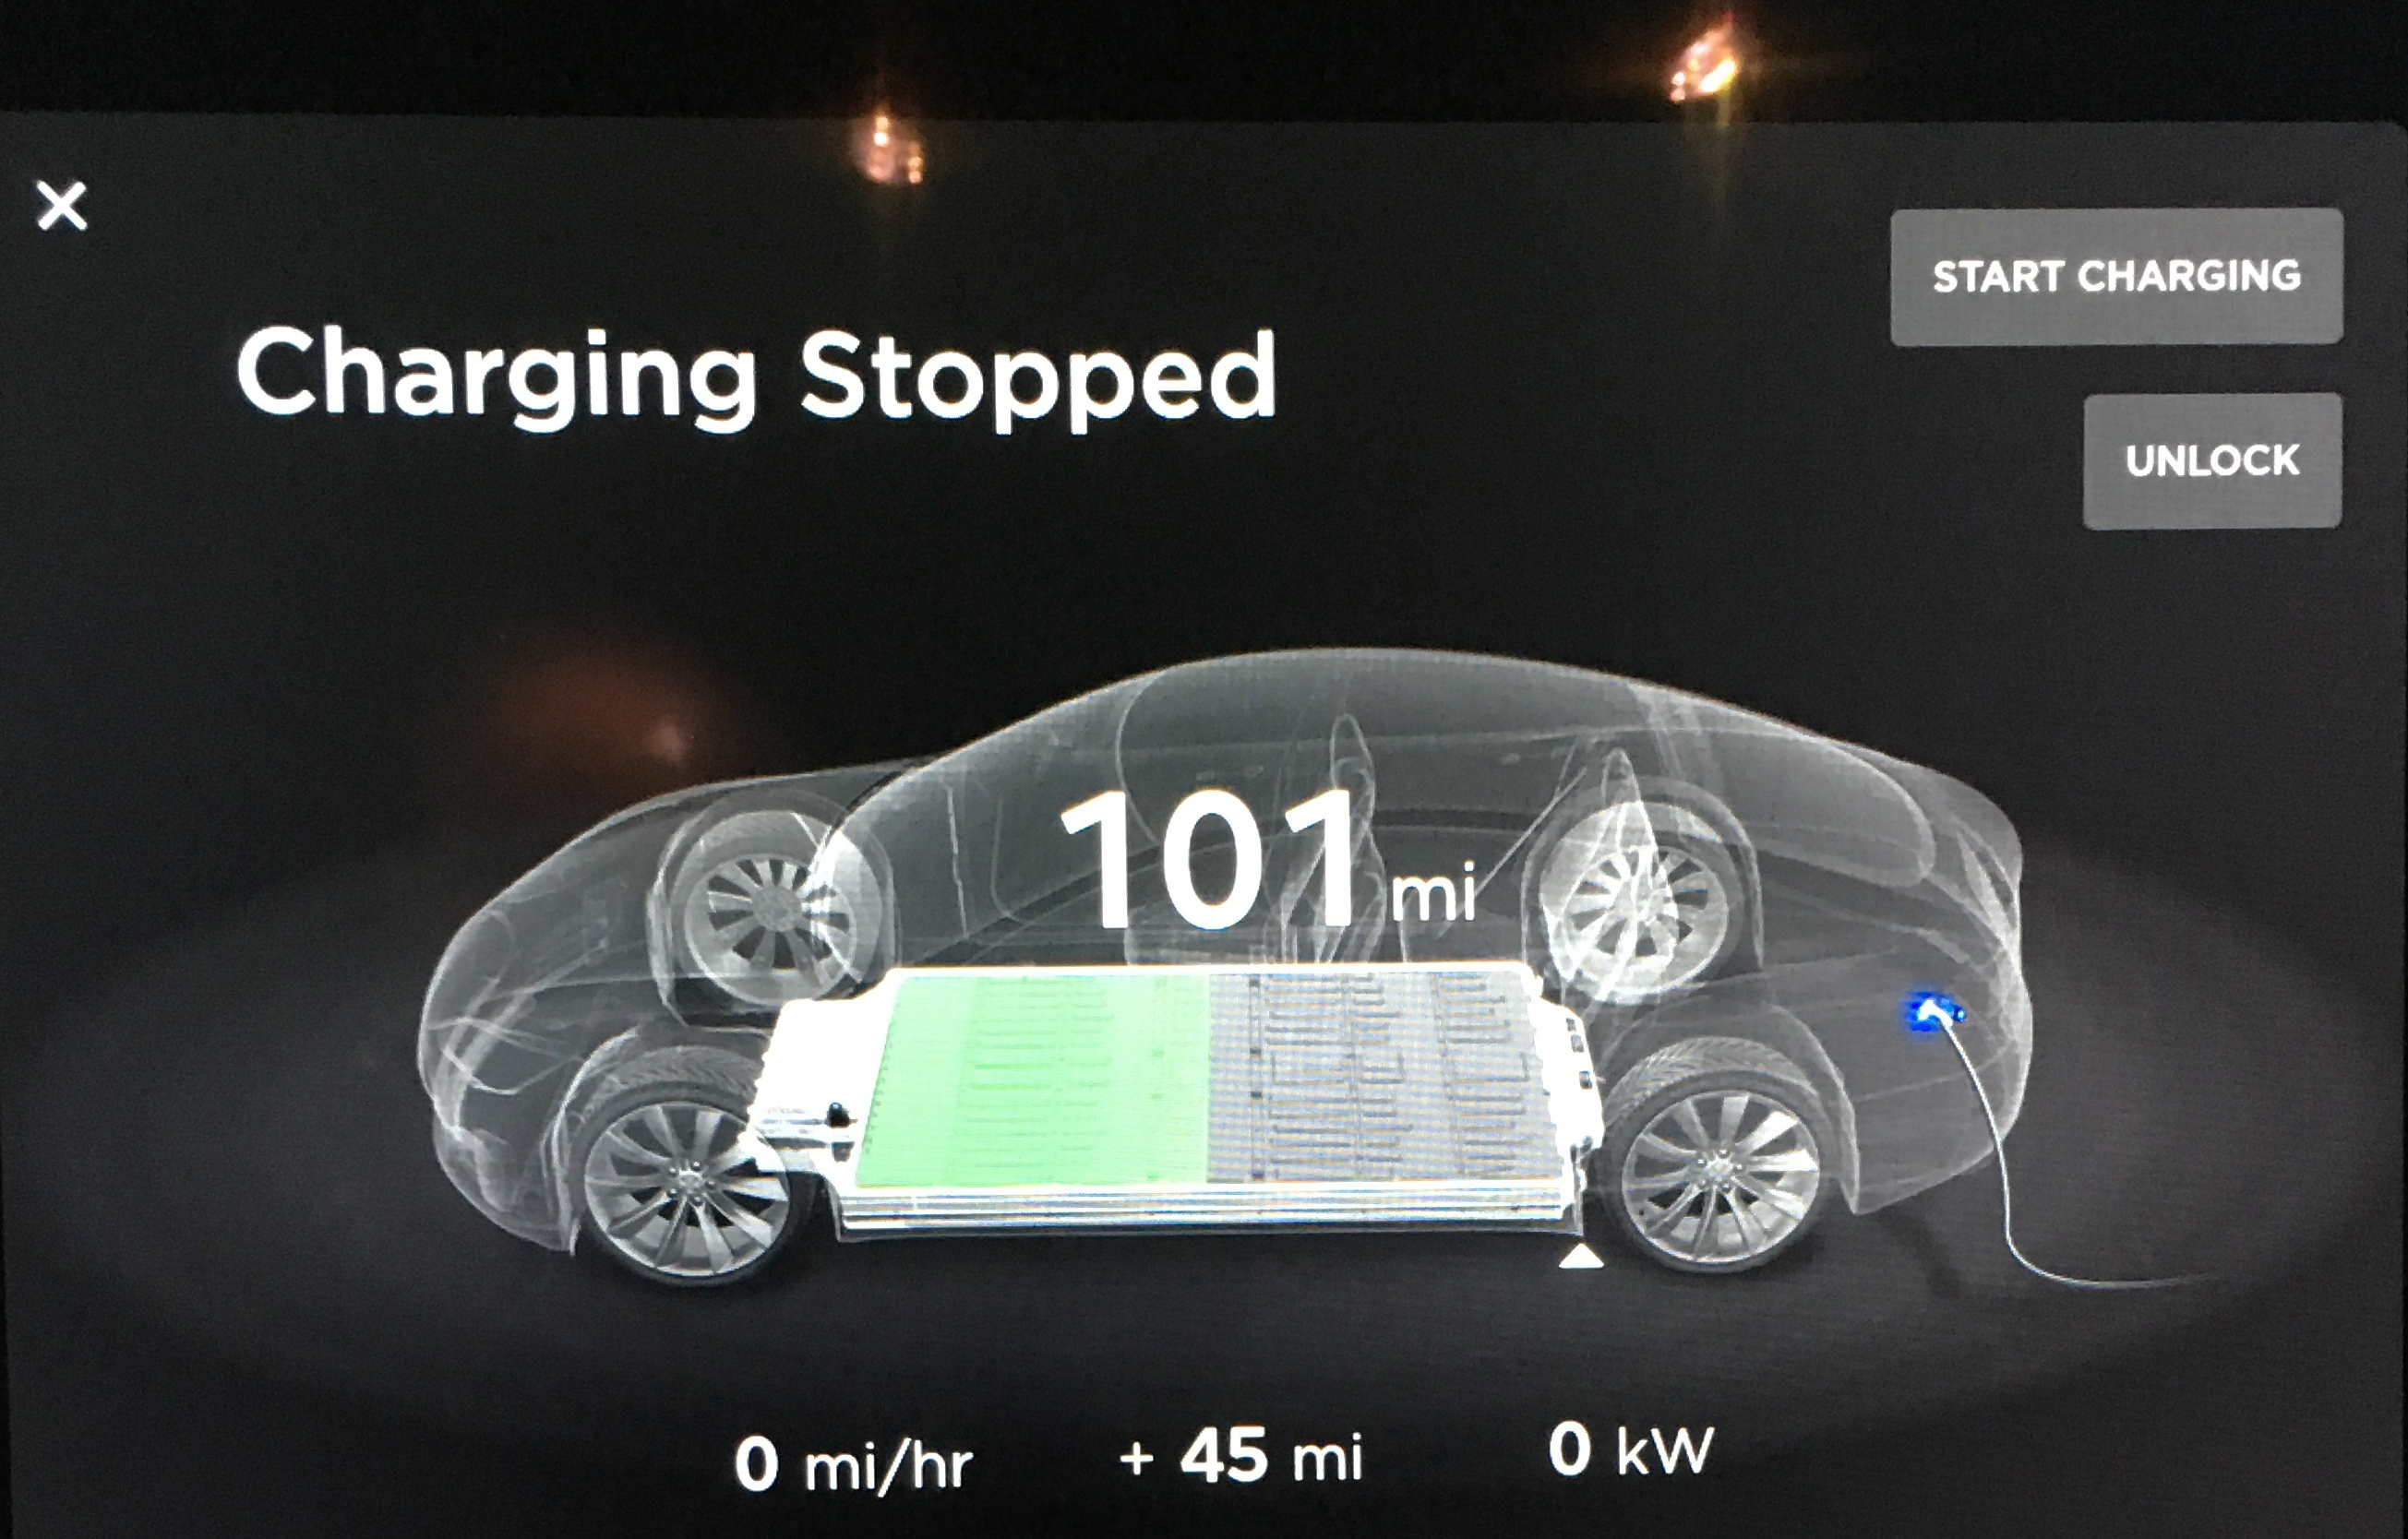 Charging Stopped 101 miles screen - Riverside Tesla Supercharger